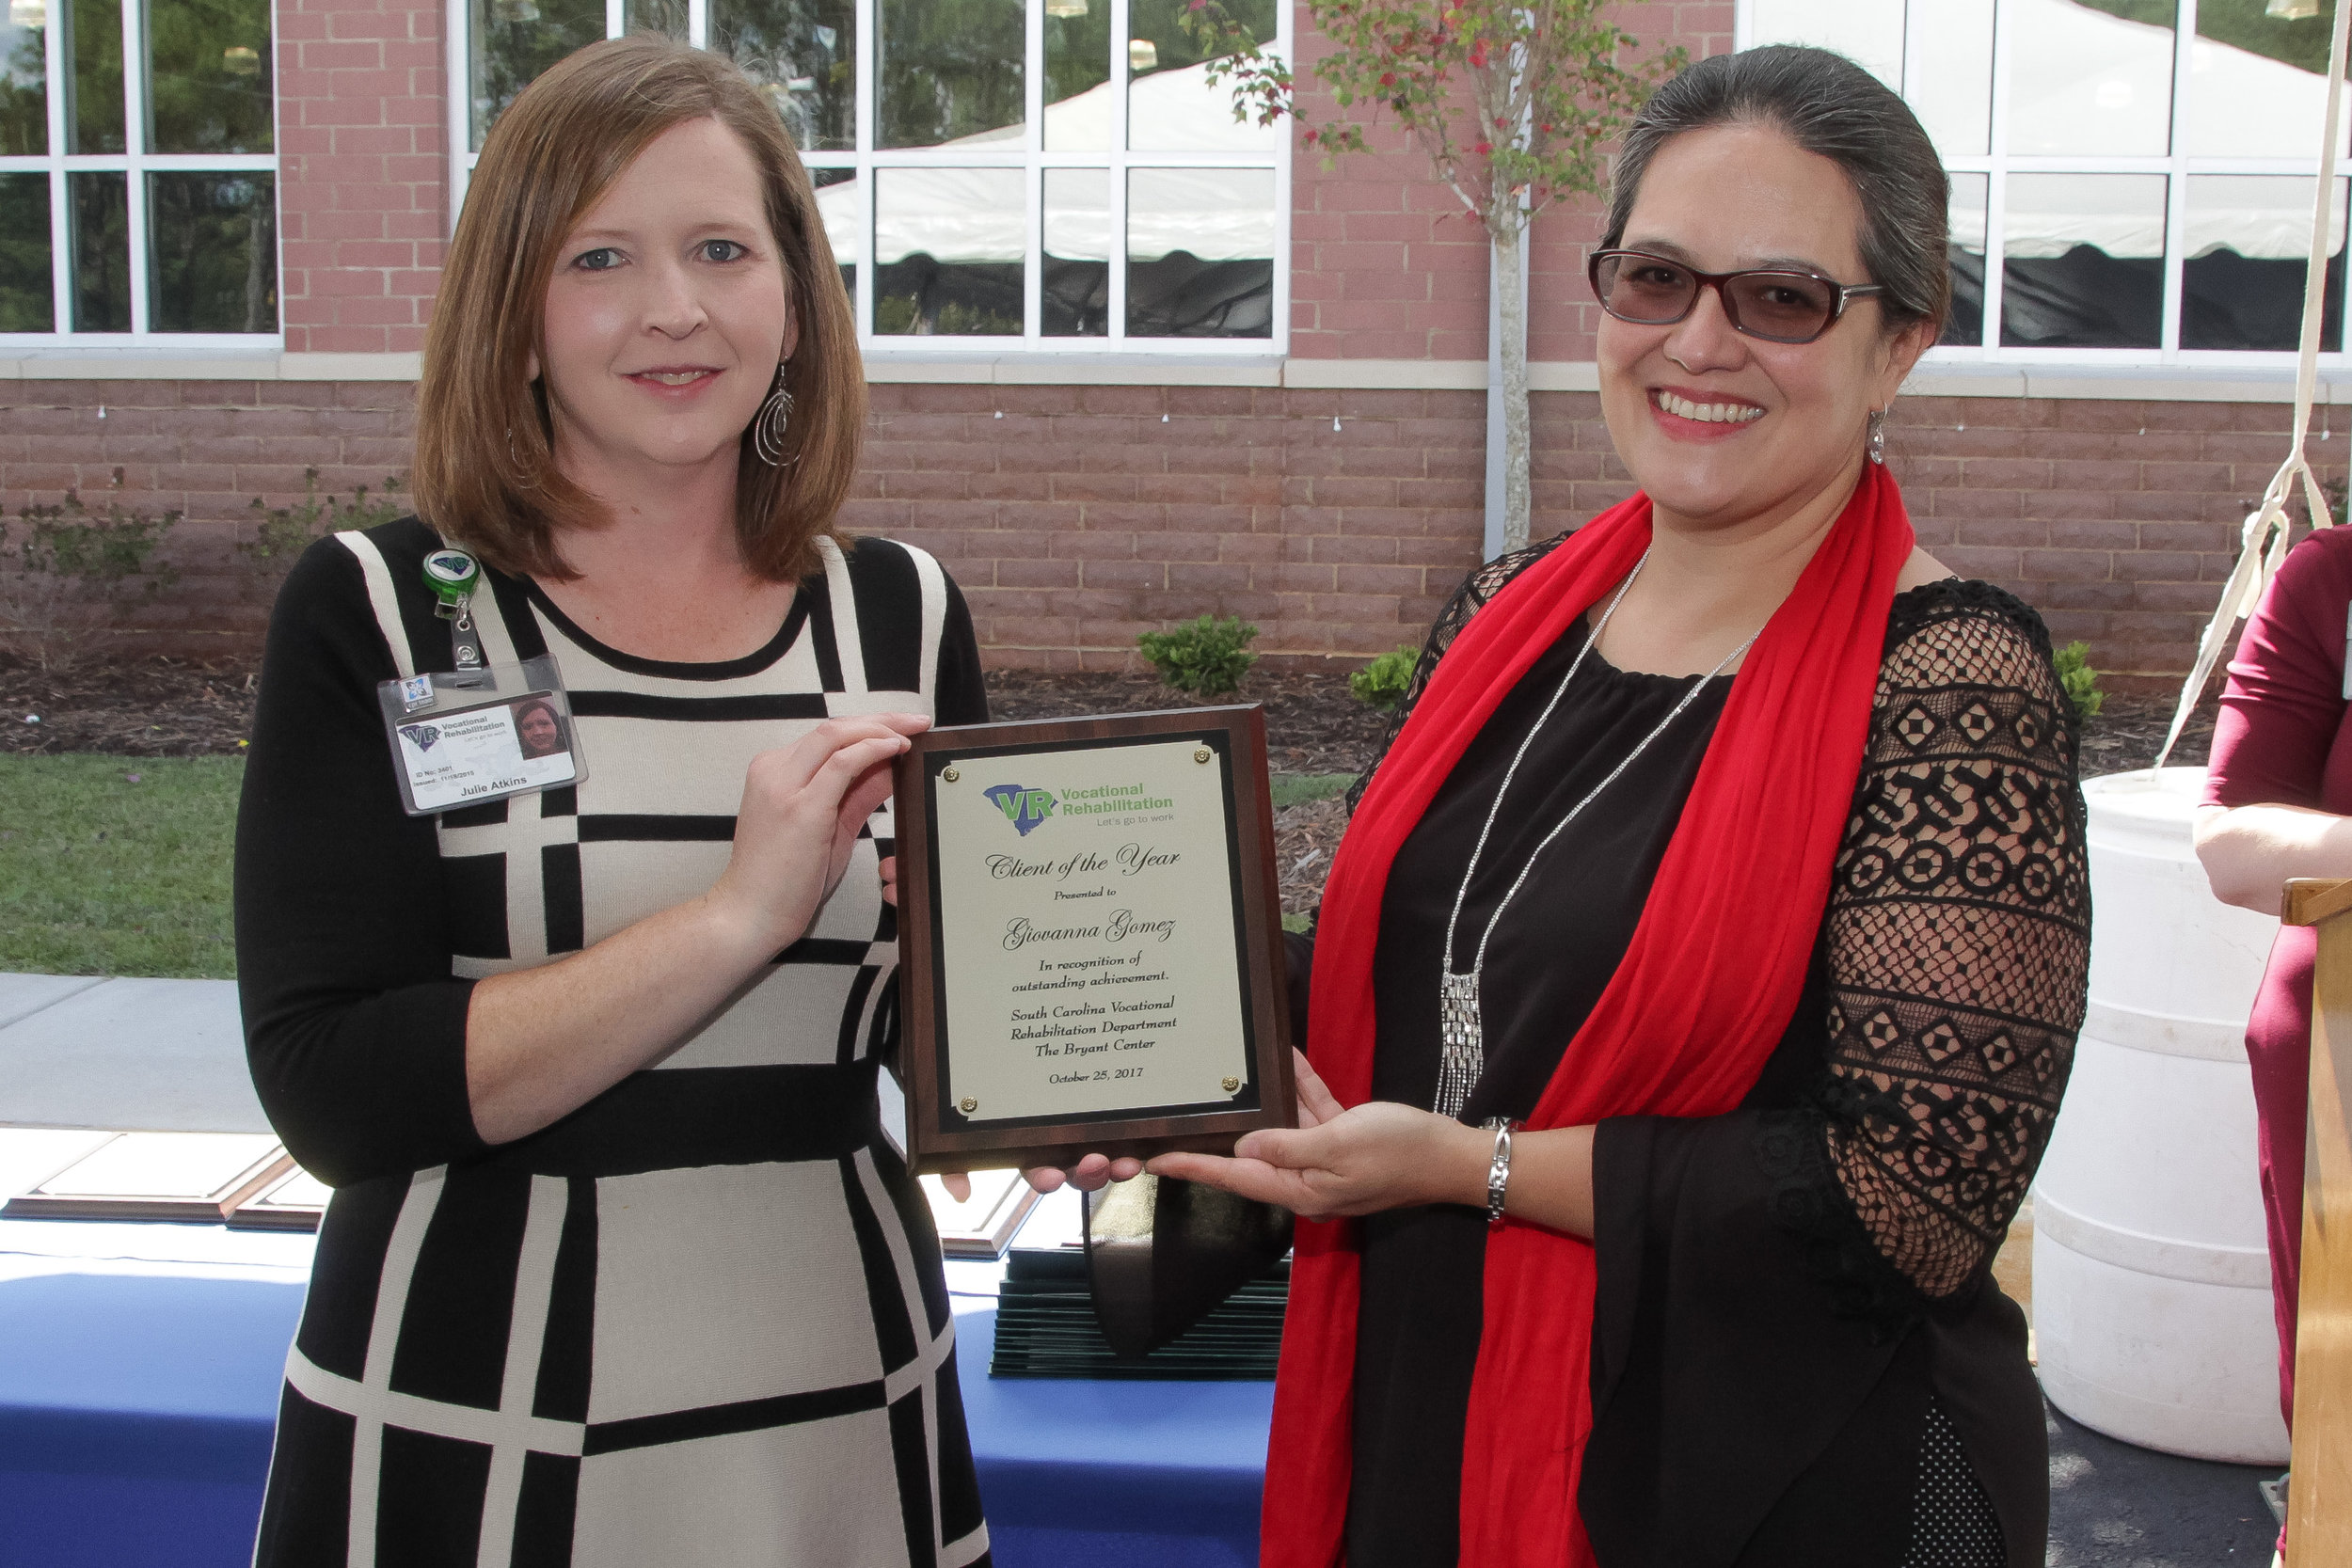 Former VR client Giovanna Gomez (right) receives the Lyman Office Client of the Year award from Julie Atkins, Area Client Services Manager.